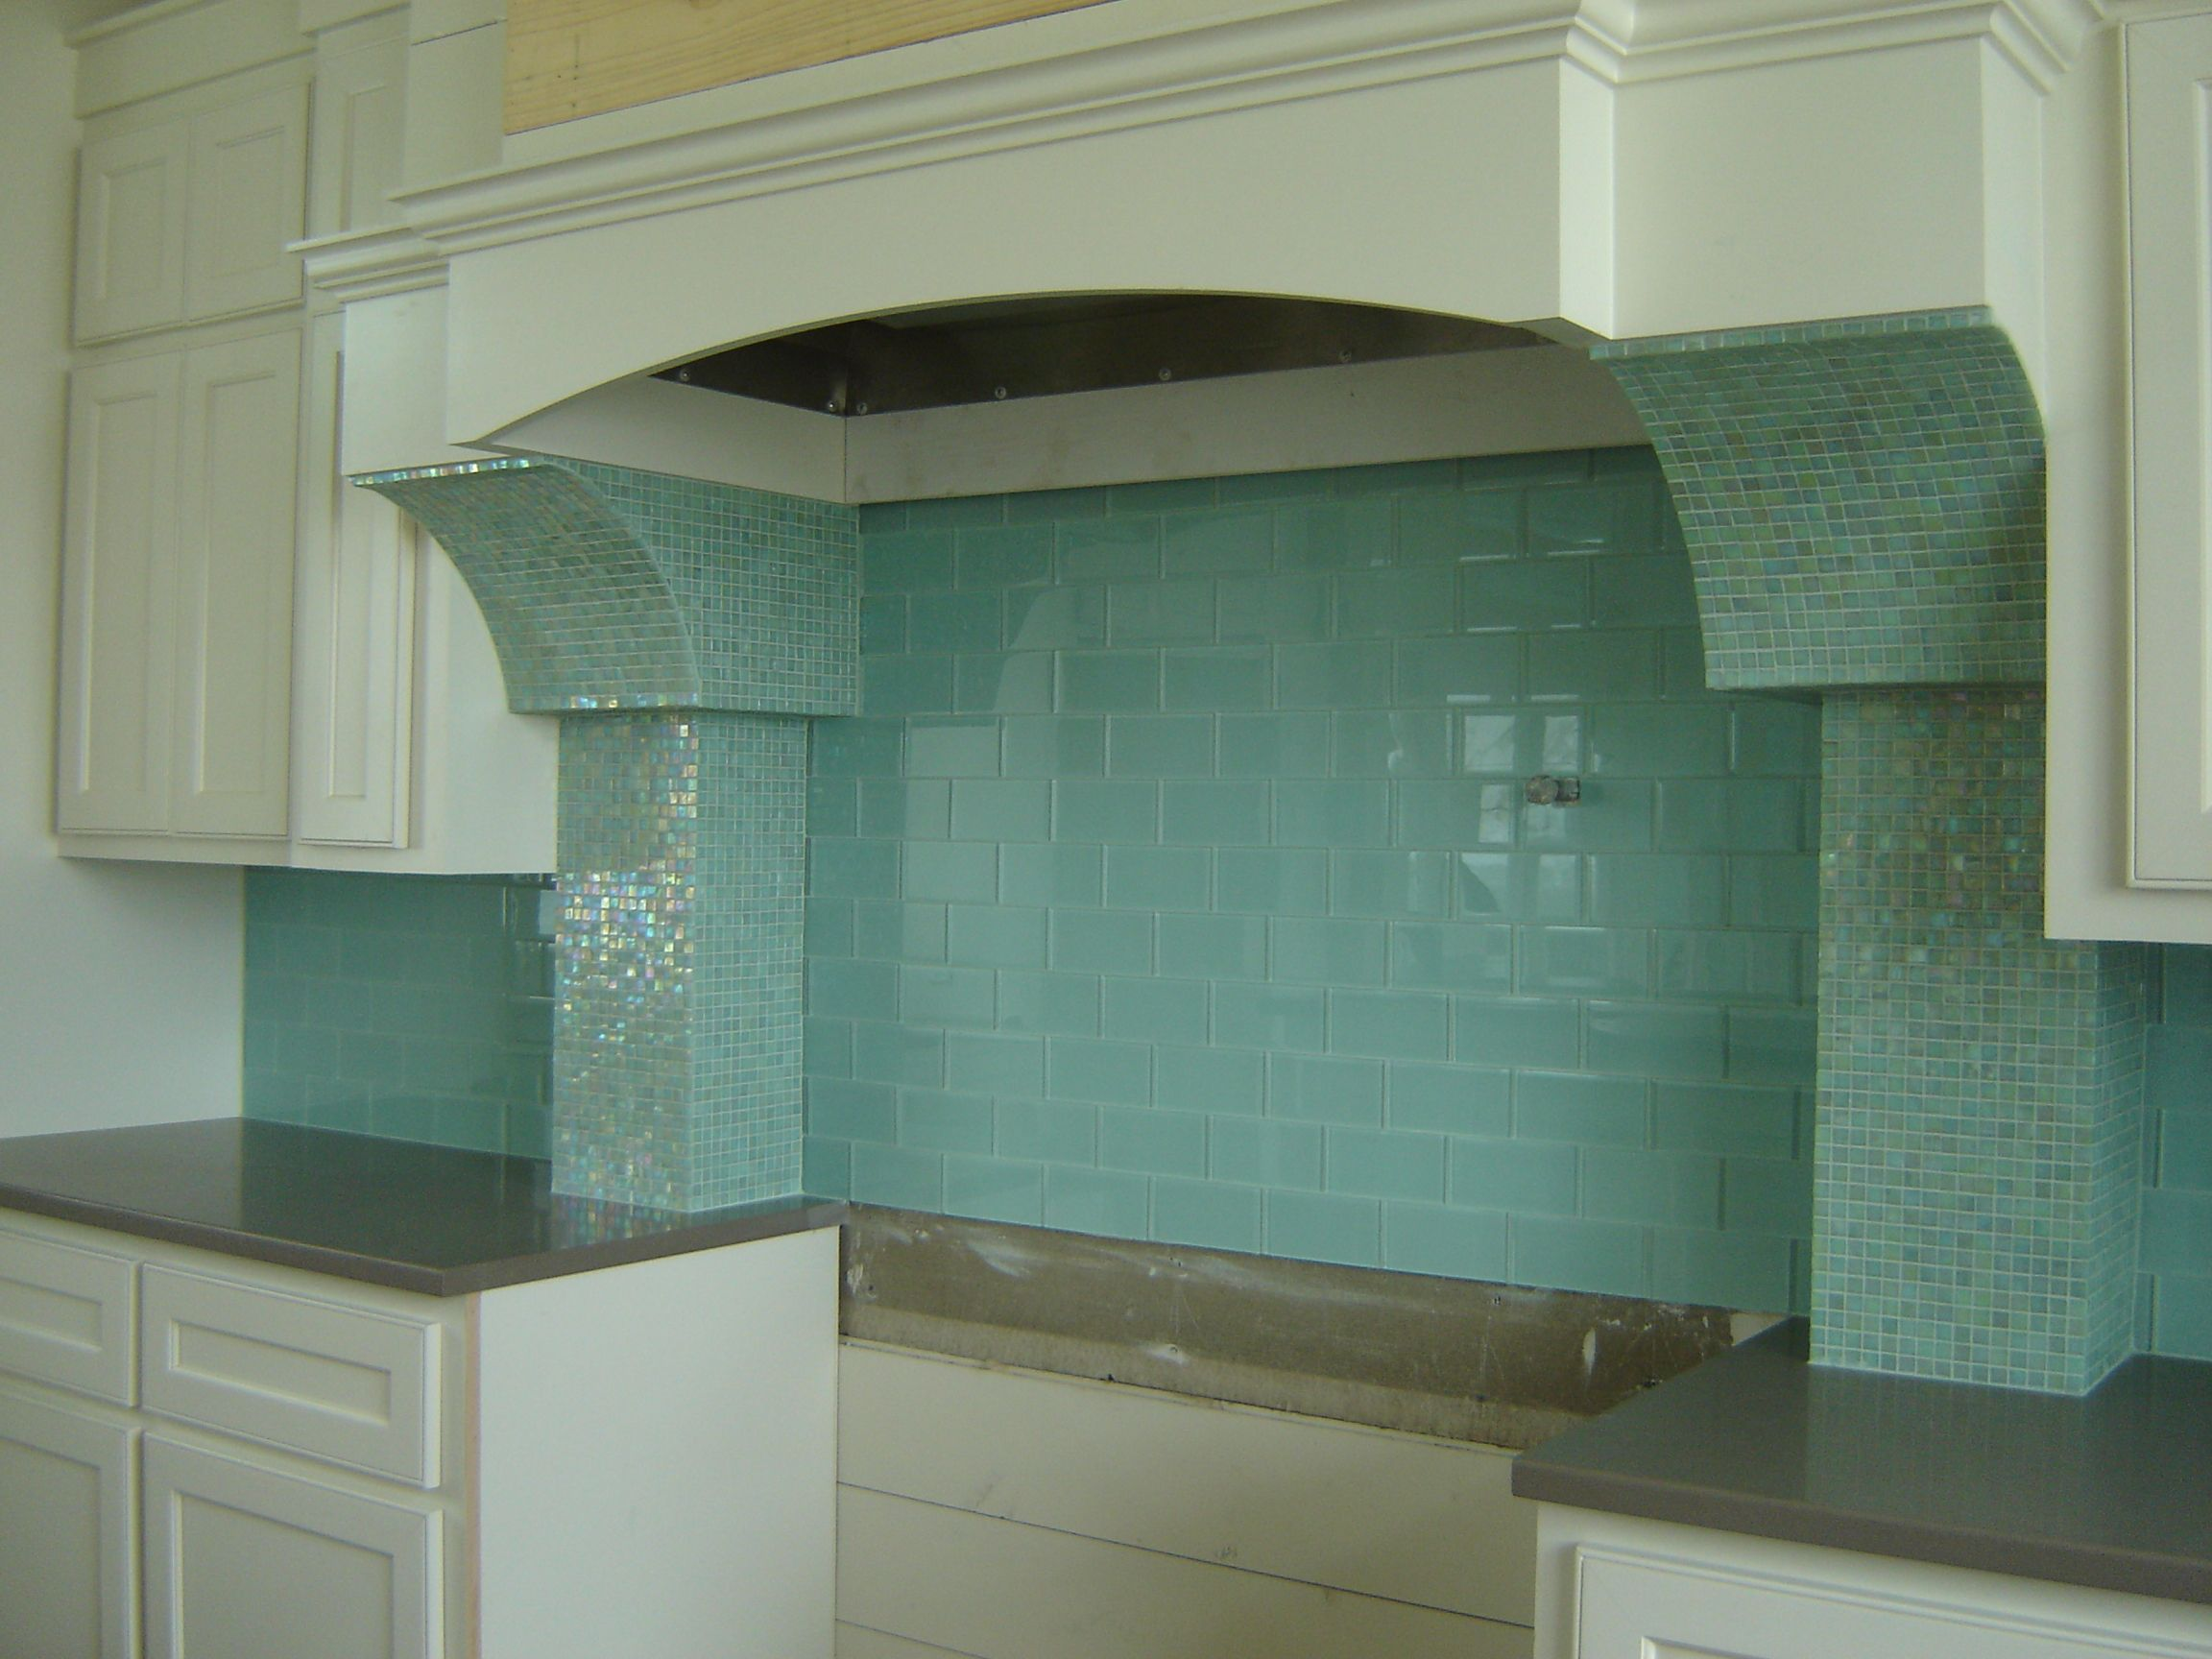 - Image Result For Kitchen Glass Tile Backsplash Aqua Glass Subway